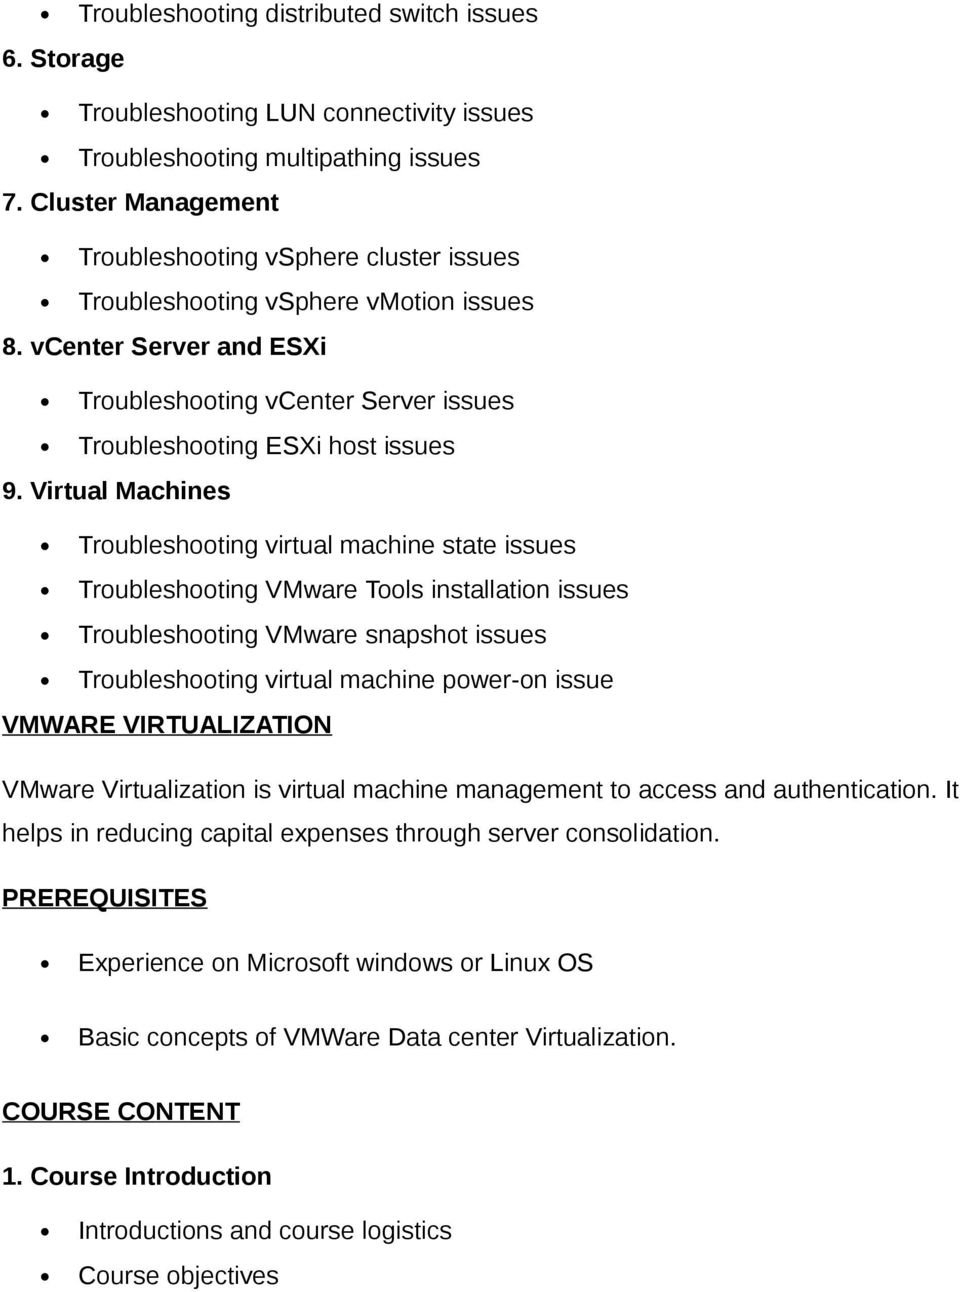 Virtual Machines Troubleshooting virtual machine state issues Troubleshooting VMware Tools installation issues Troubleshooting VMware snapshot issues Troubleshooting virtual machine power-on issue